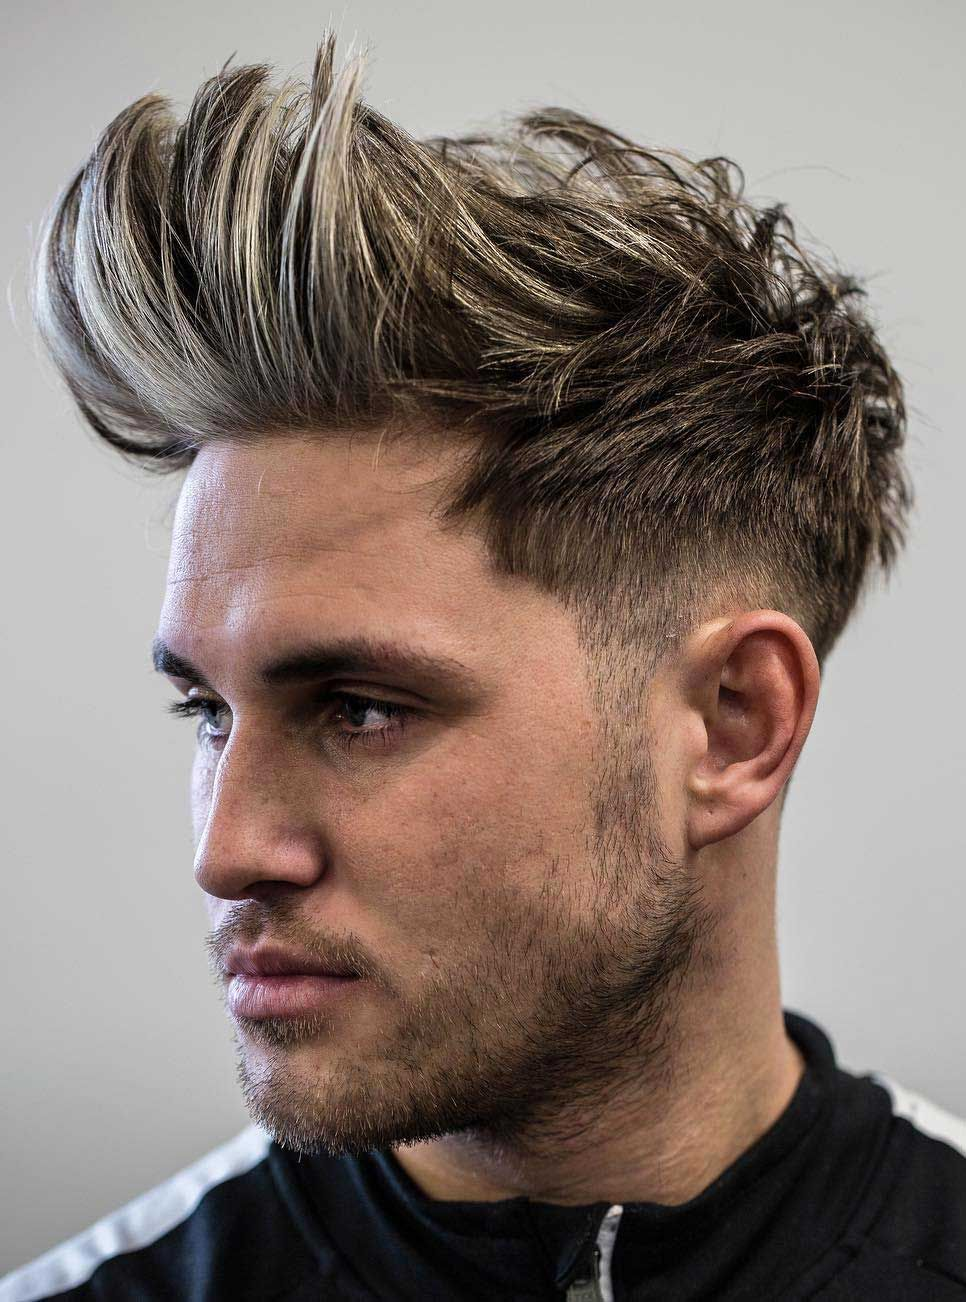 Faux Hawk Hairstyle Keep It Even More Exciting Faux Hawk Hairstyles Mens Hairstyles Haircuts For Men